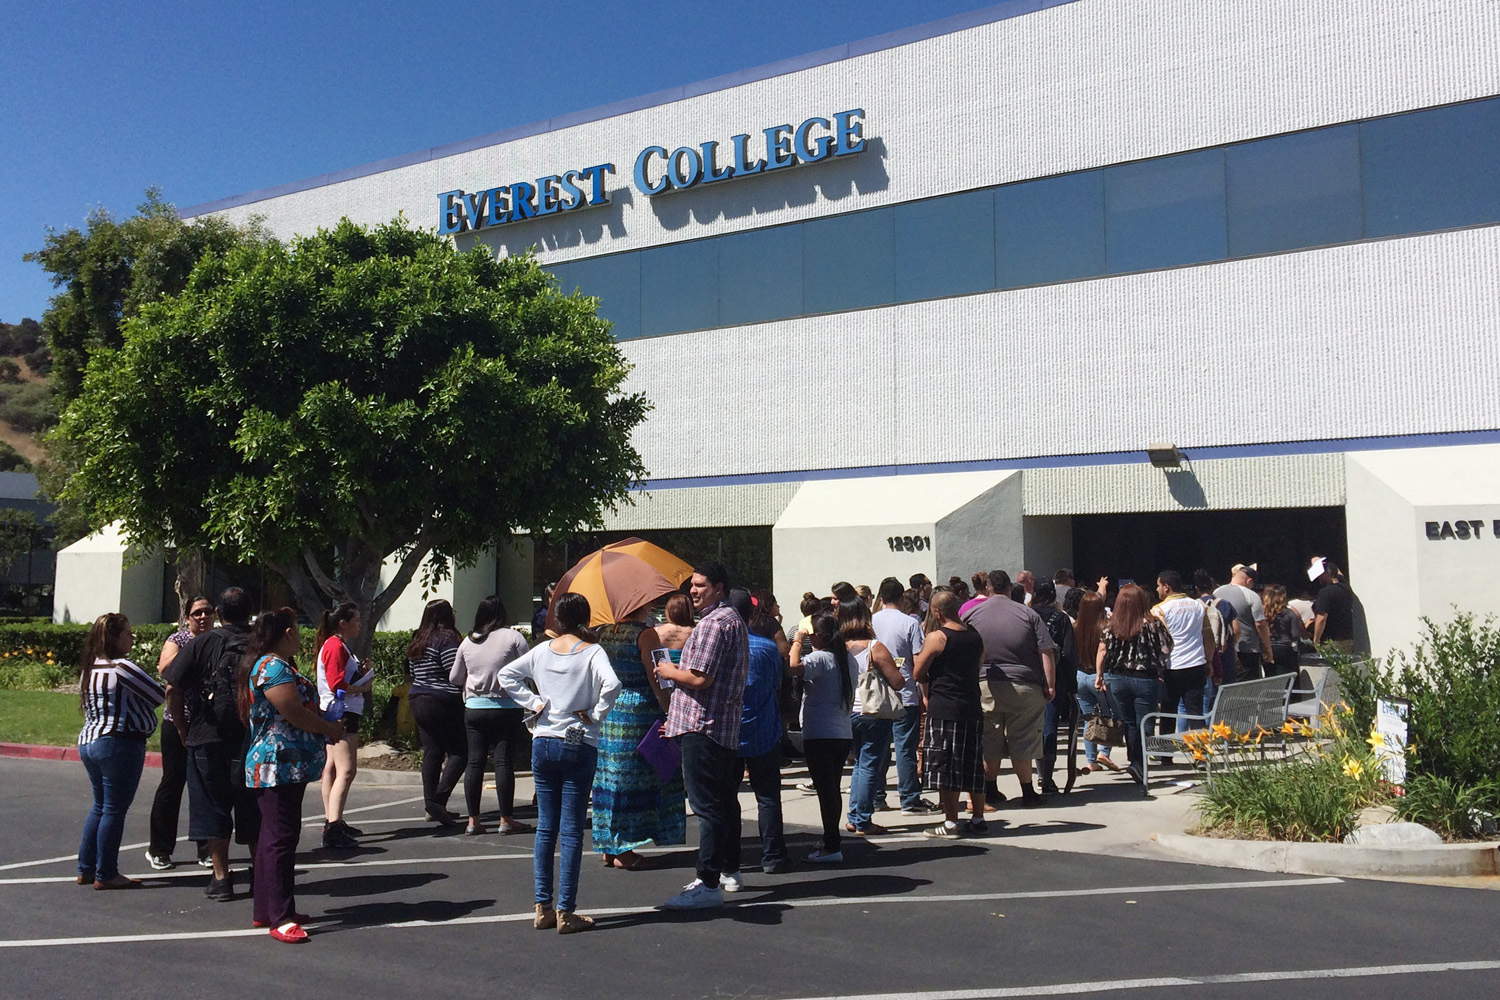 In this April 28, 2015 file photo, students wait outside Everest College in Industry, Calif., hoping to get their transcripts and information on loan forgiveness and transferring credits to other schools. (Christine Armario/AP)